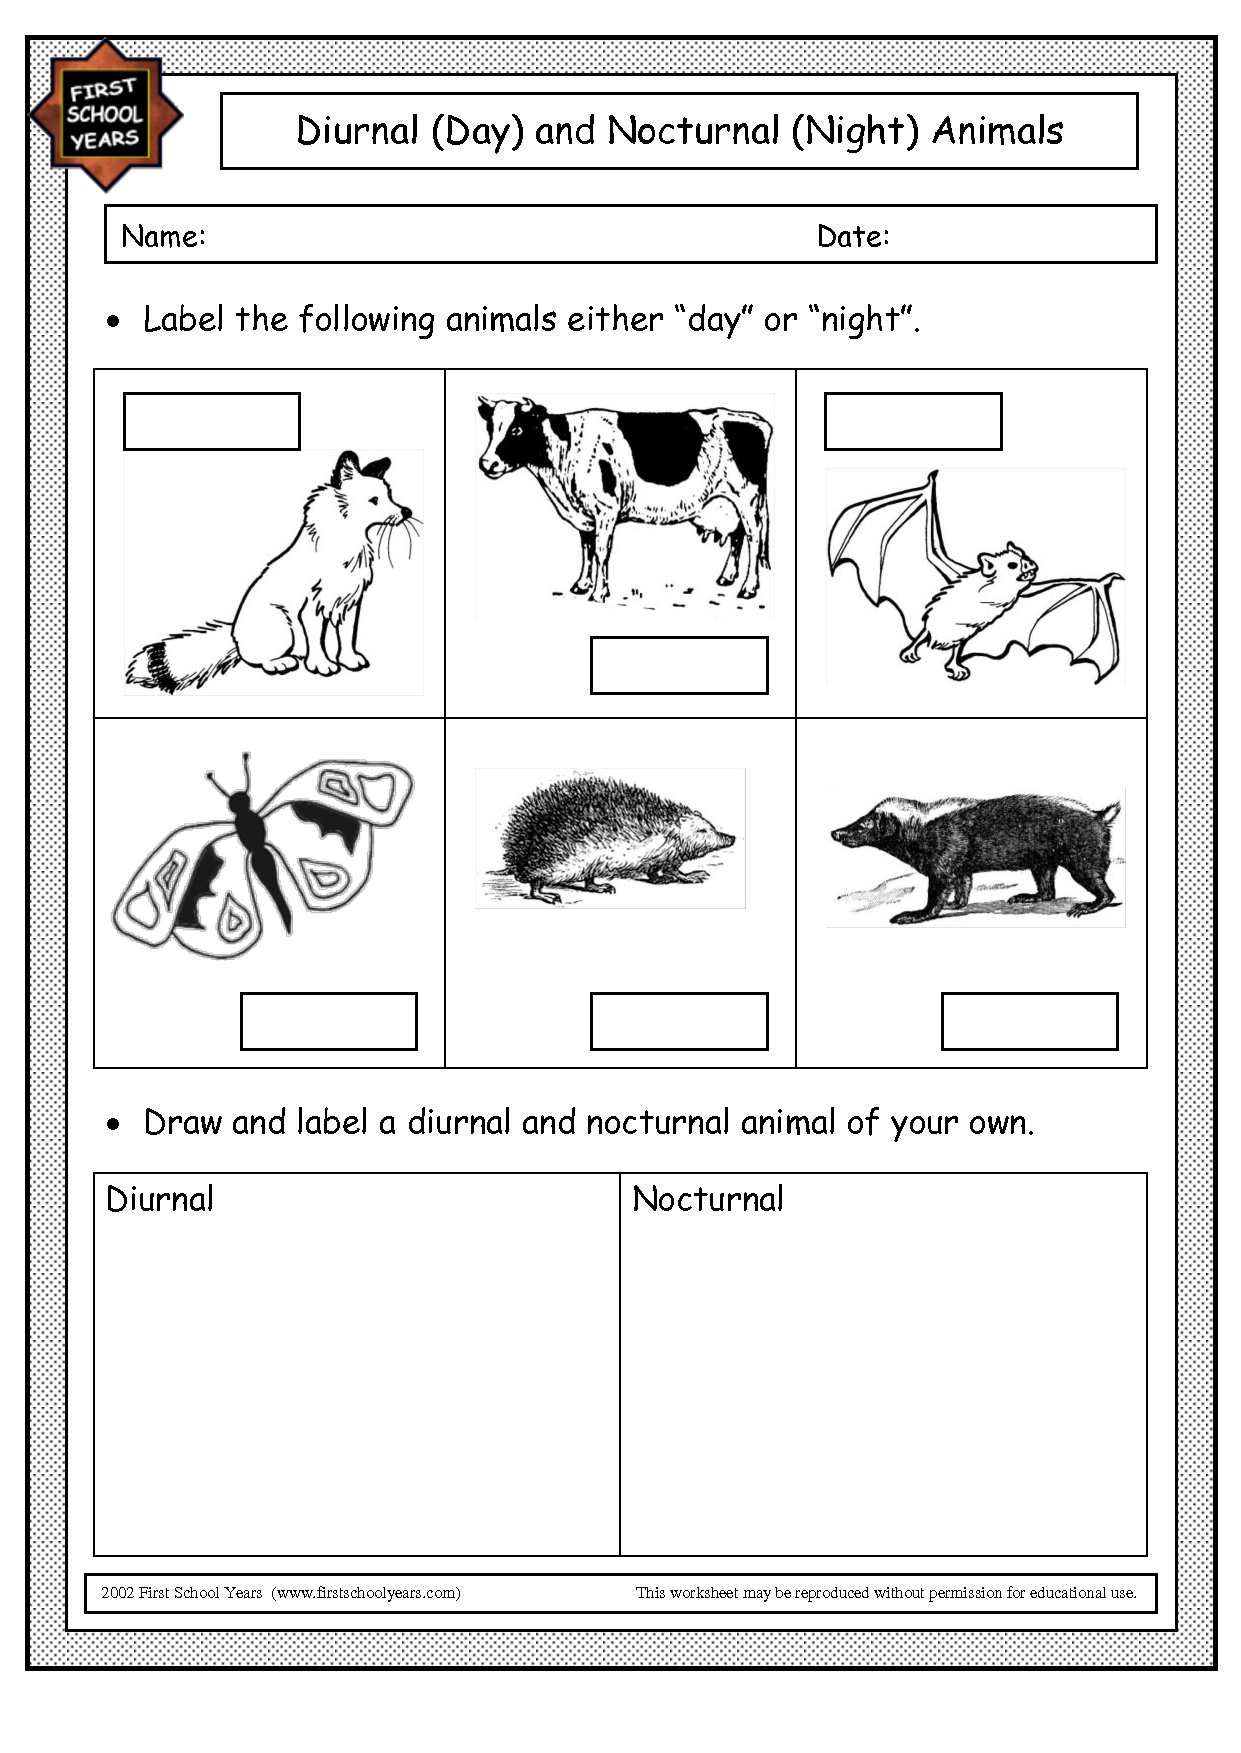 Worksheets Endangered Animals Worksheets Grade 2 image result for nocturnal animals worksheets kindergarten nature kindergarten